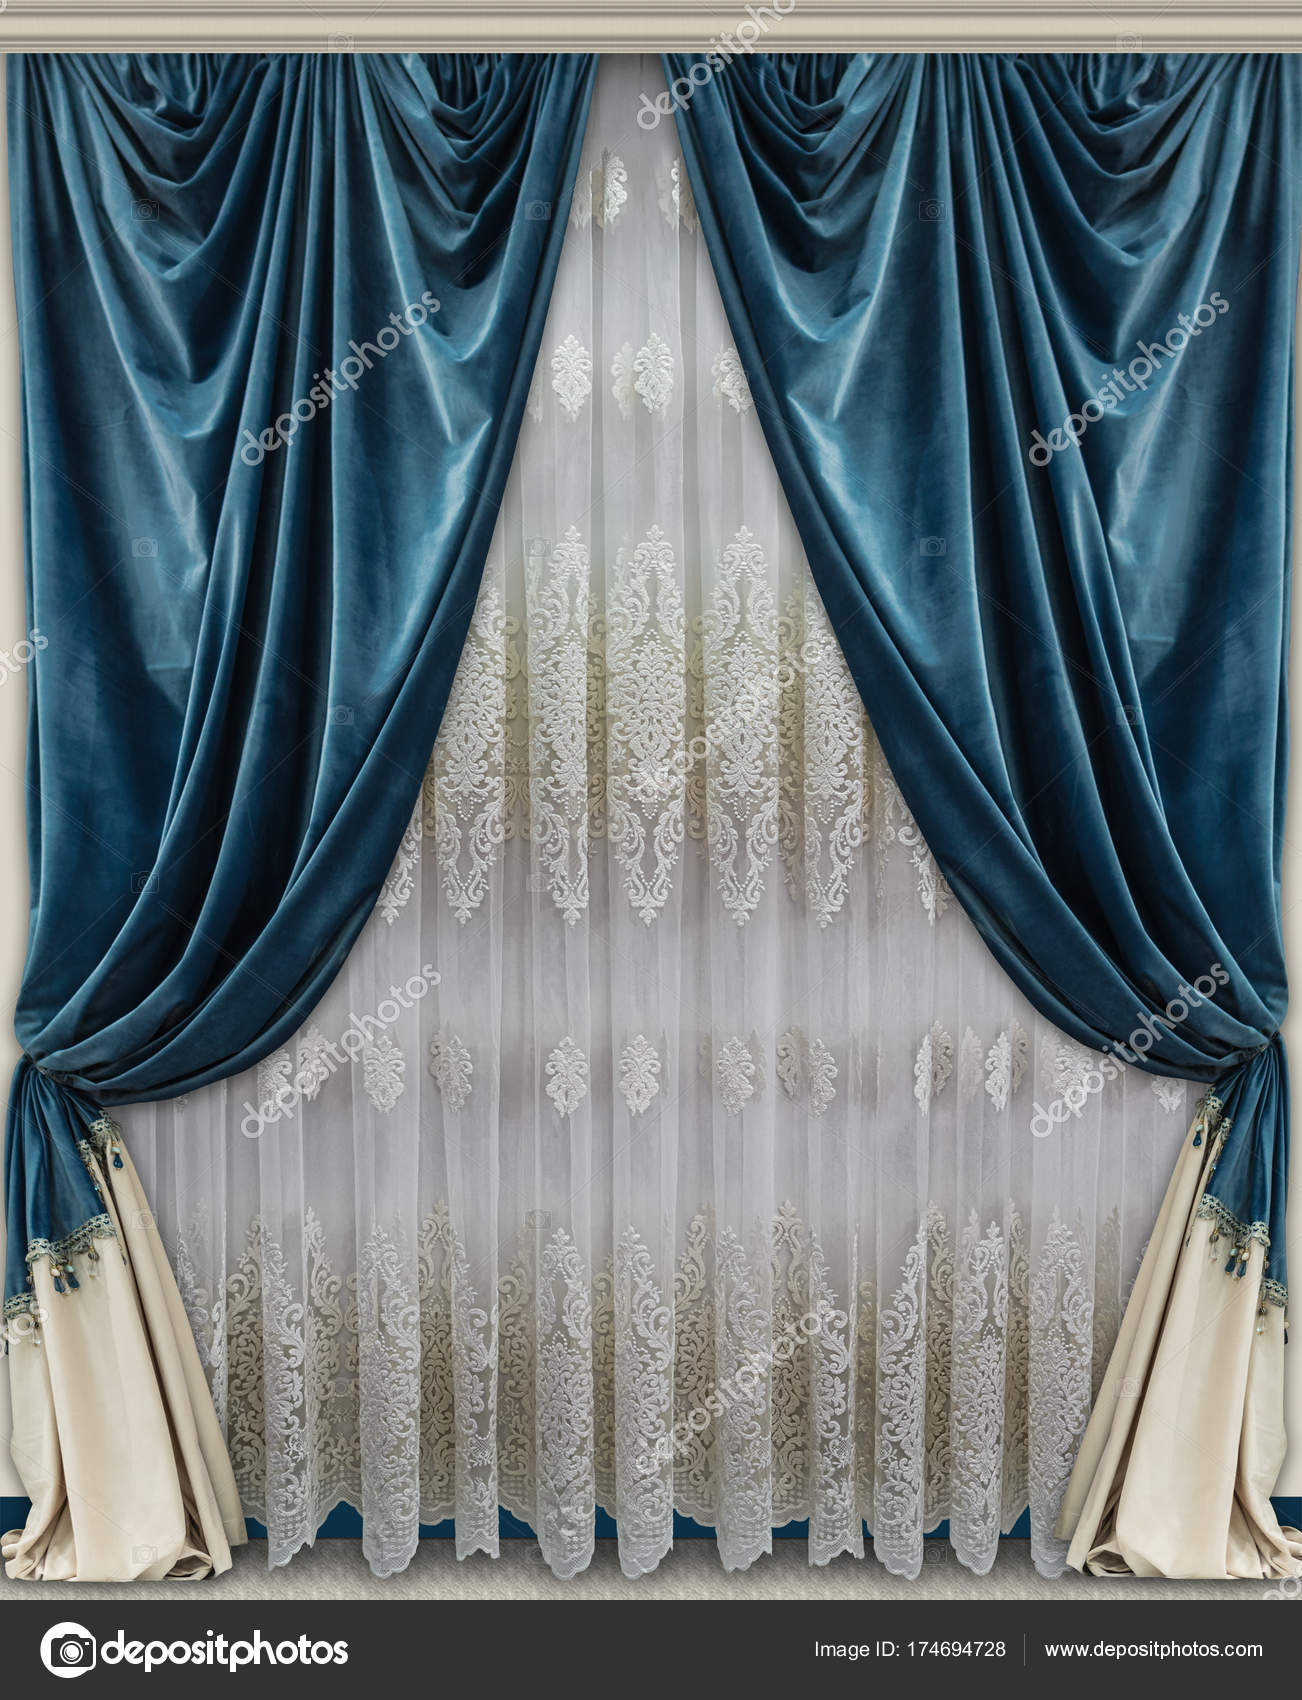 Cheap Stylish Curtains Stylish Curtains Made Of Velvet Fabric Of Blue And Beige Color And